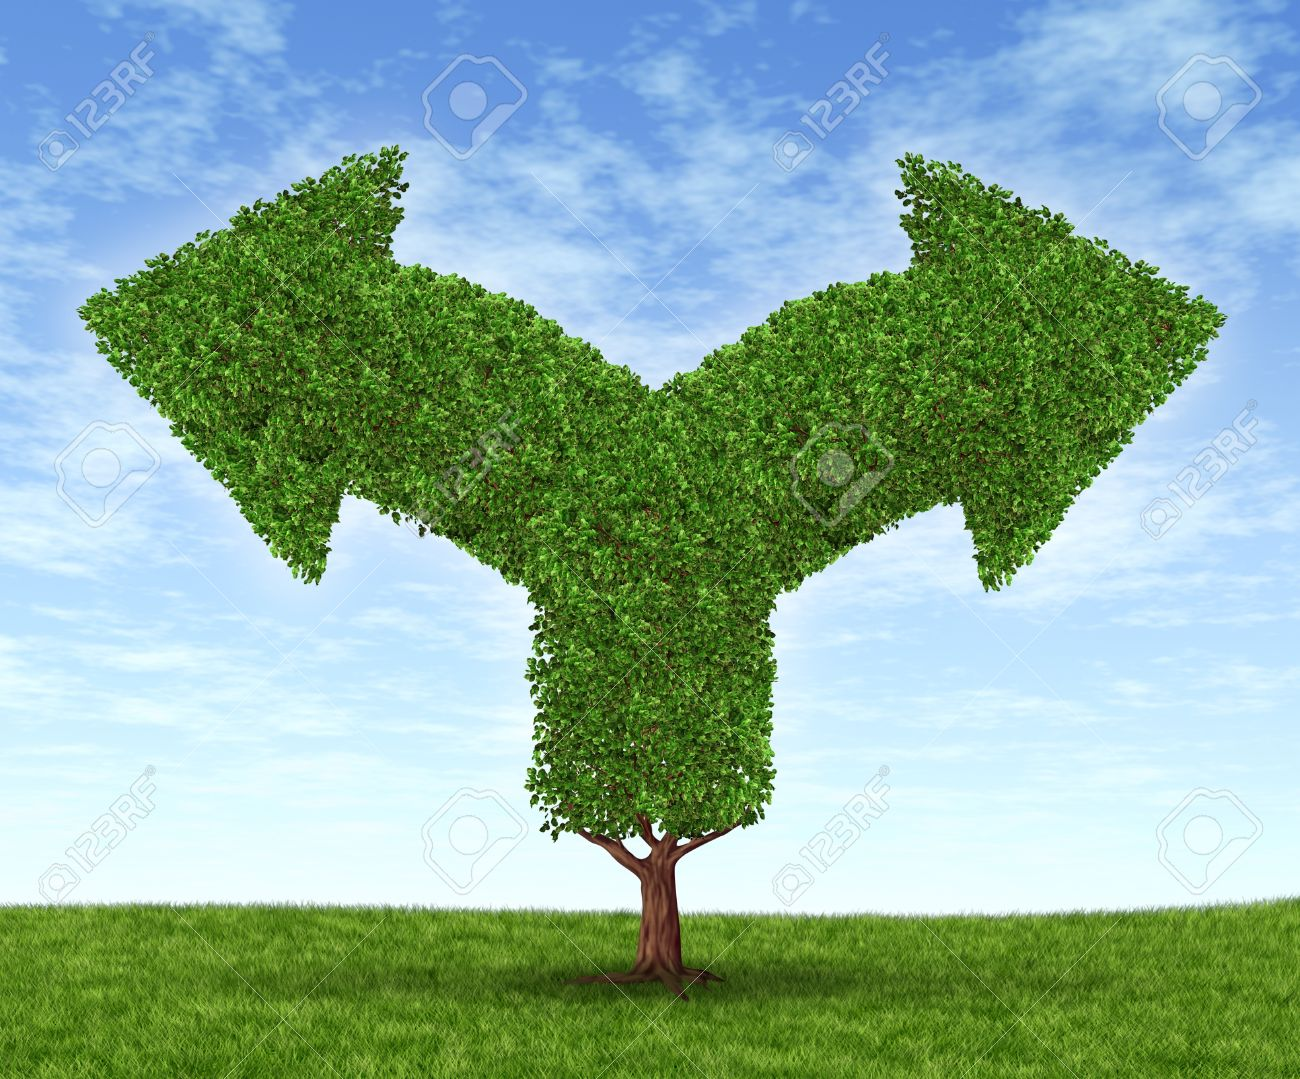 Growing business options and financial dilemma due to growth in financial fortune as a tree and leaves in the shape of forked arrows going in opposite directions on a blue summer sky with green grass - 13070408